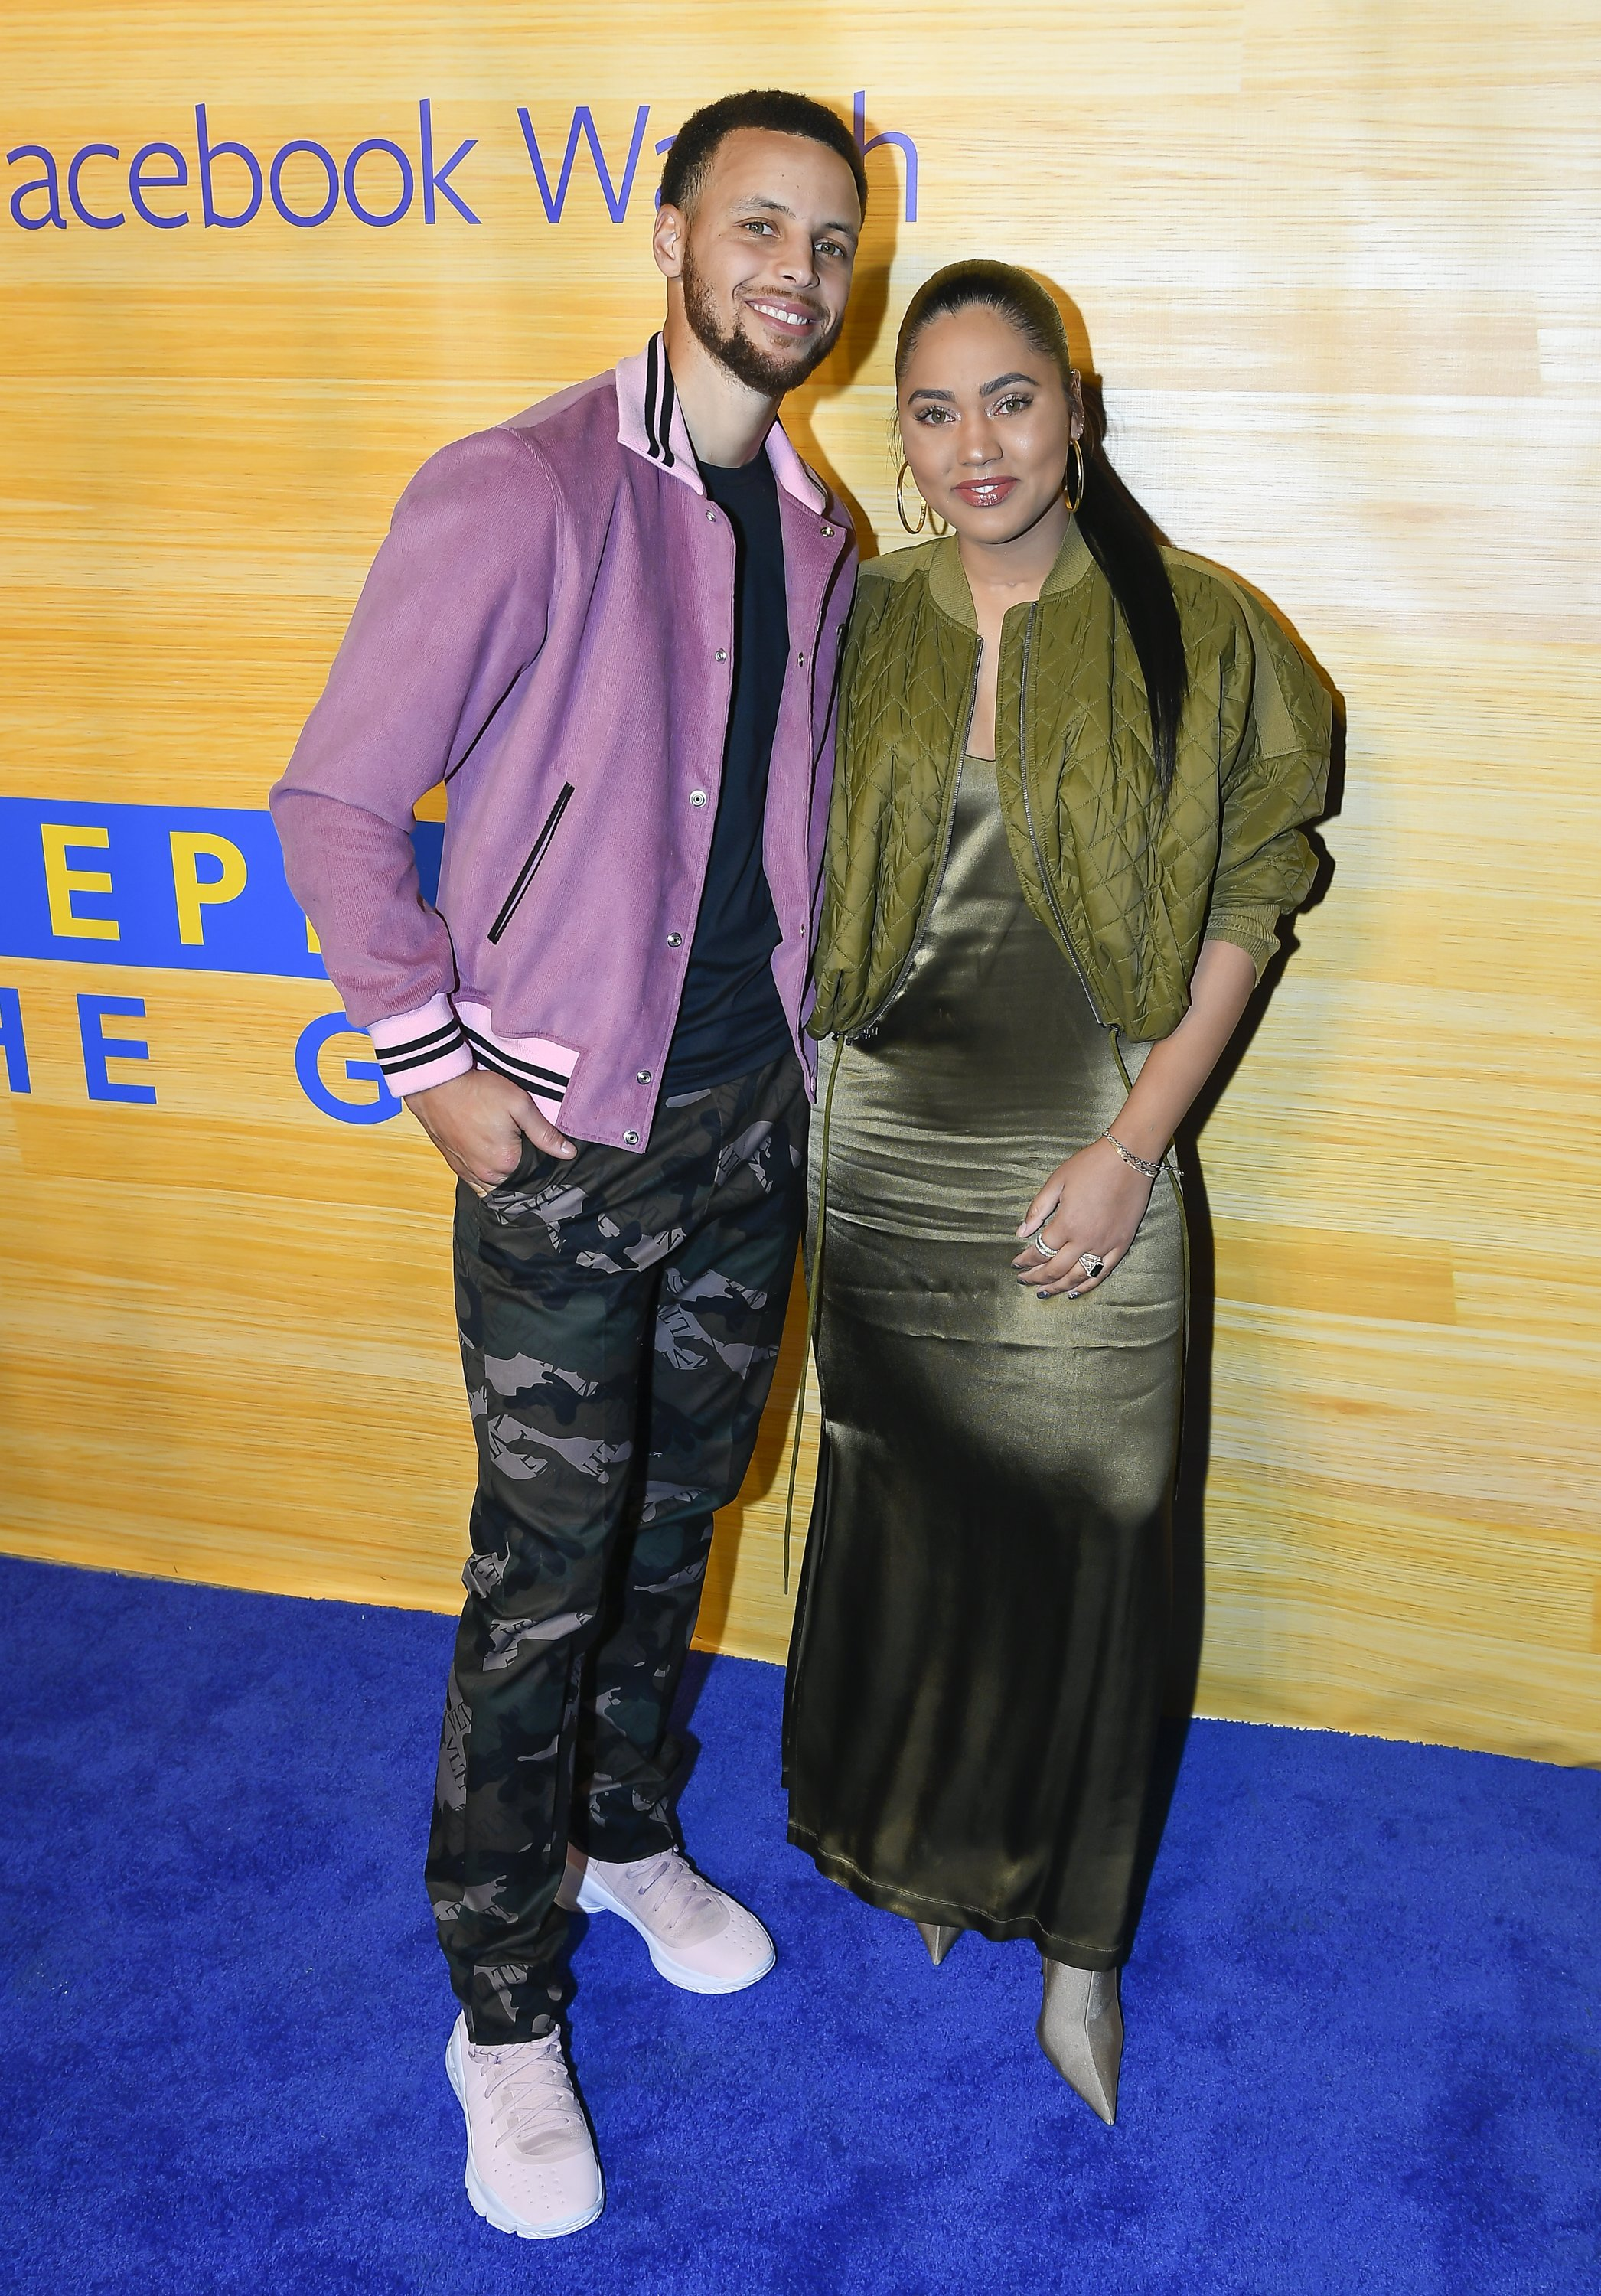 """Stephen Curry and Ayesha Curry attend the """"Stephen Vs The Game"""" Facebook Watch Preview at 16th Street Station on April 1, 2019 in Oakland, California  """